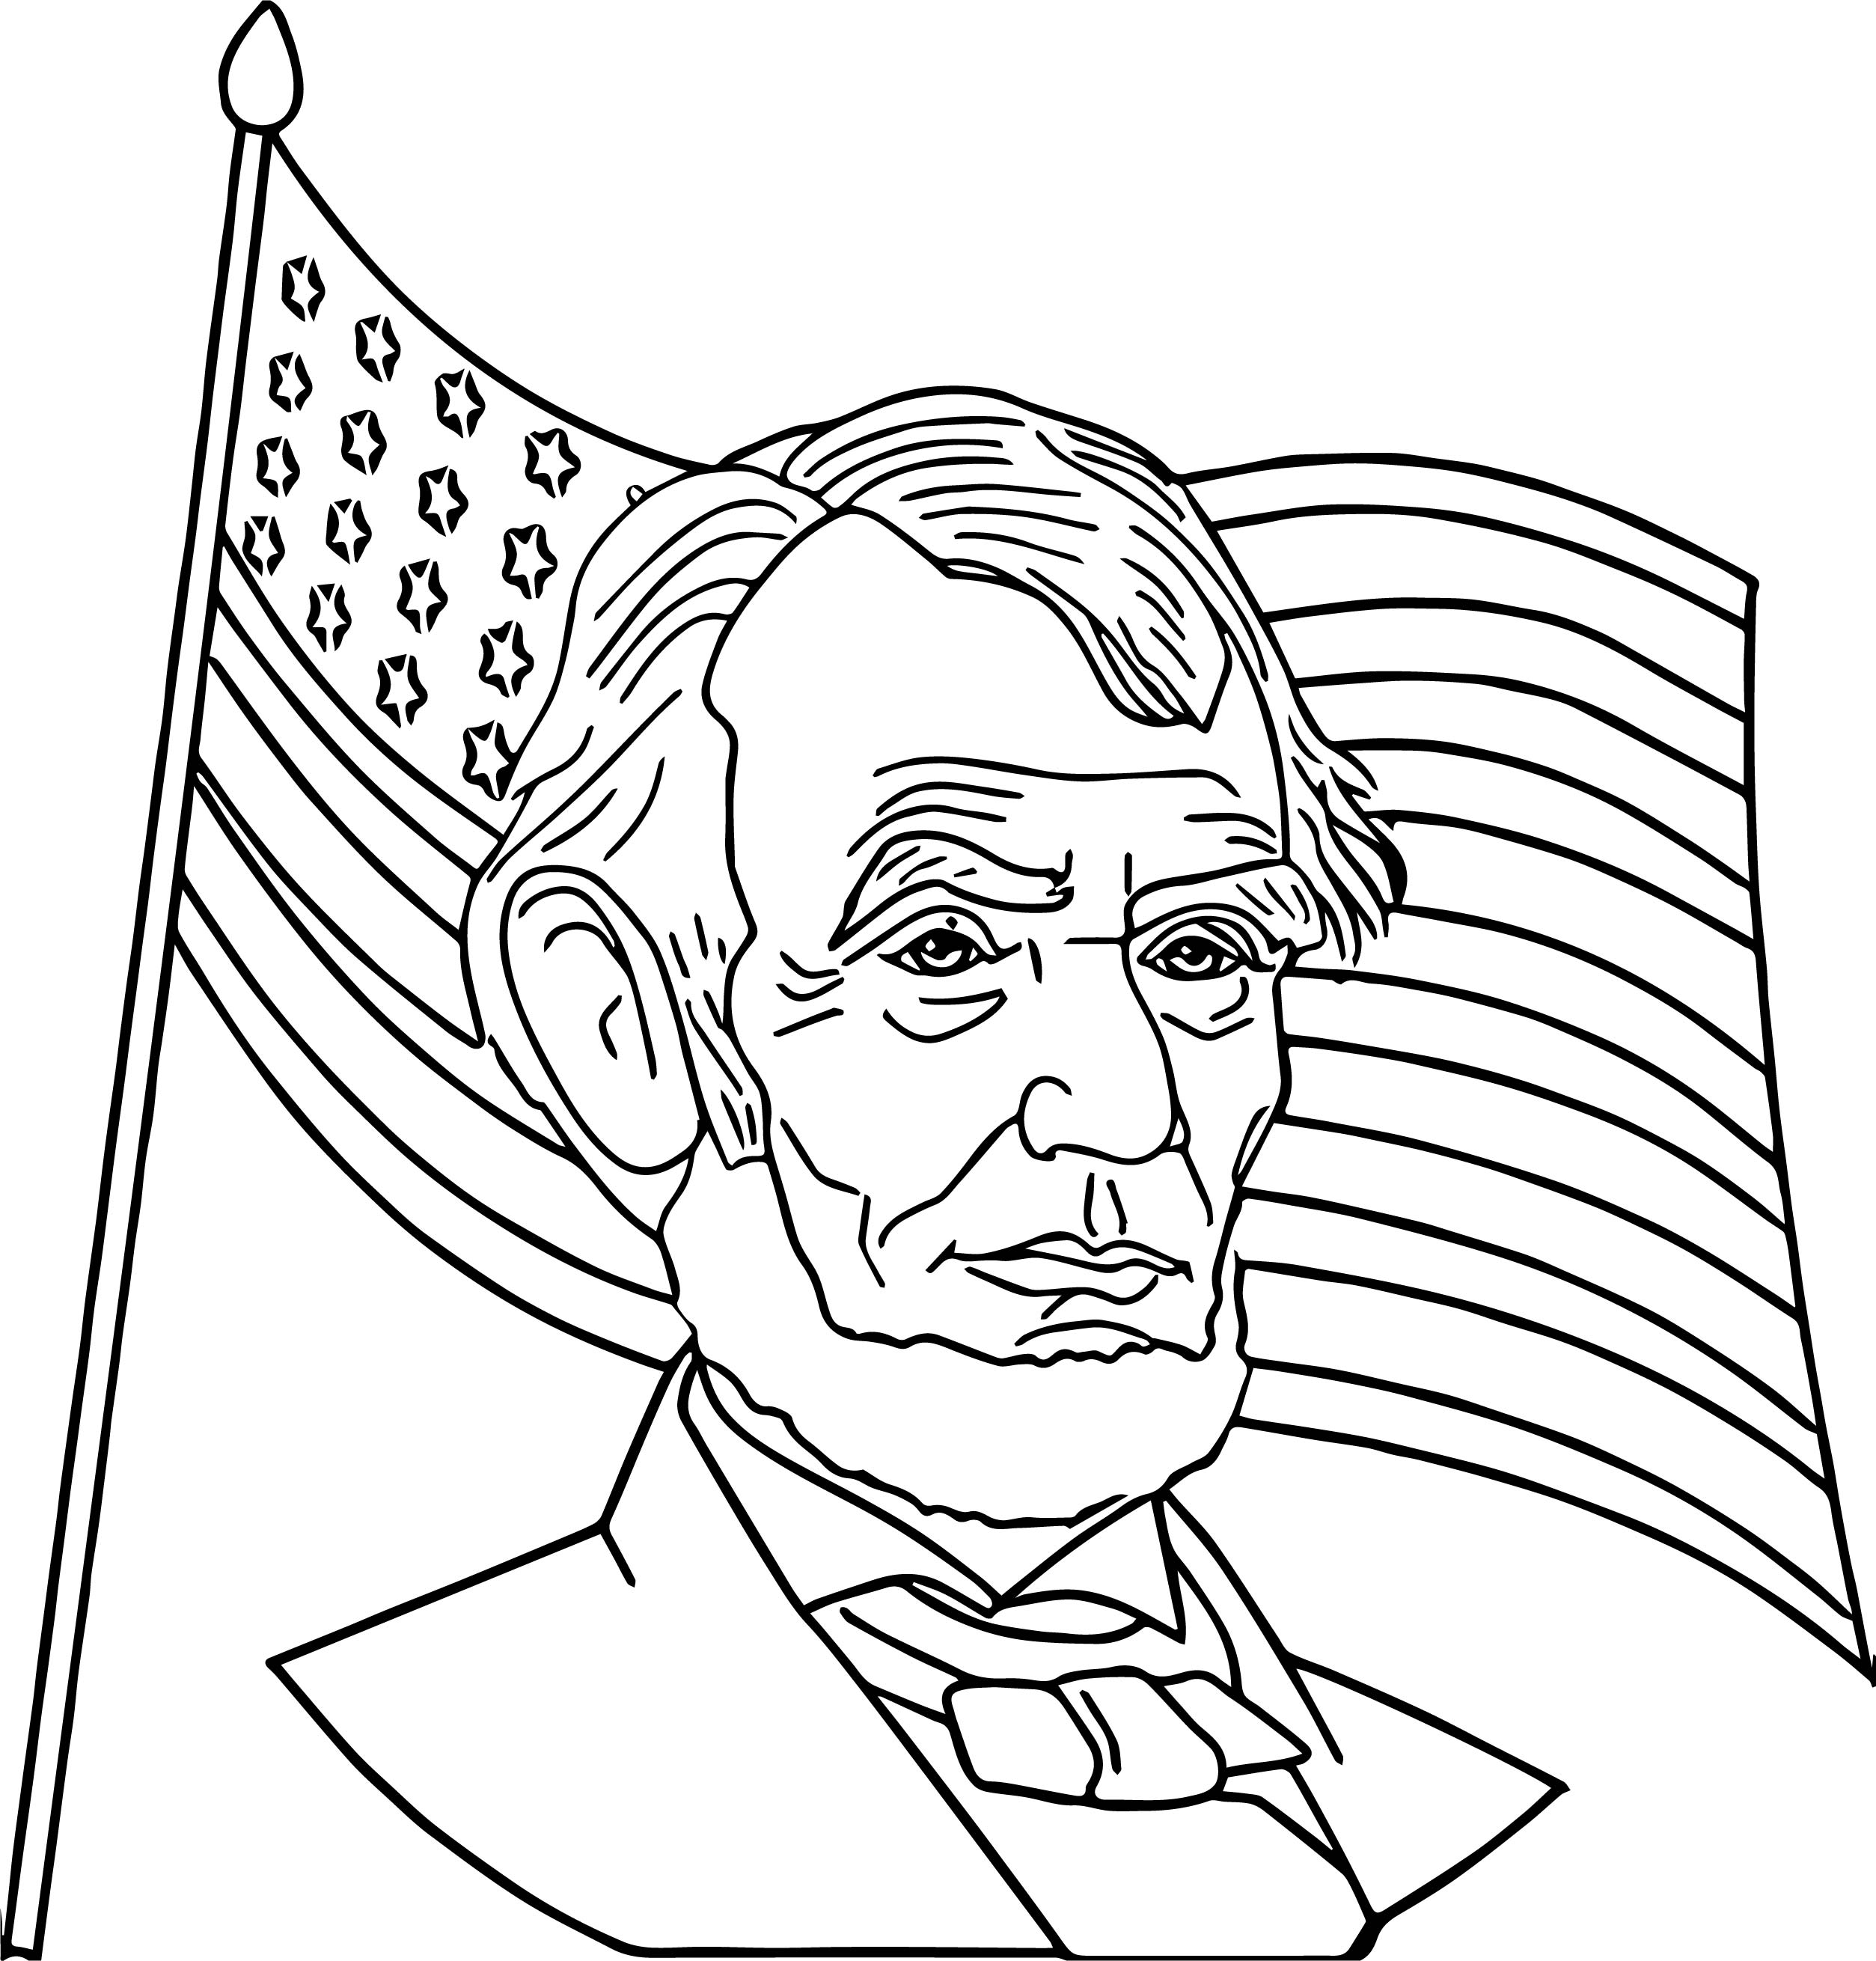 how to draw abraham lincoln hat